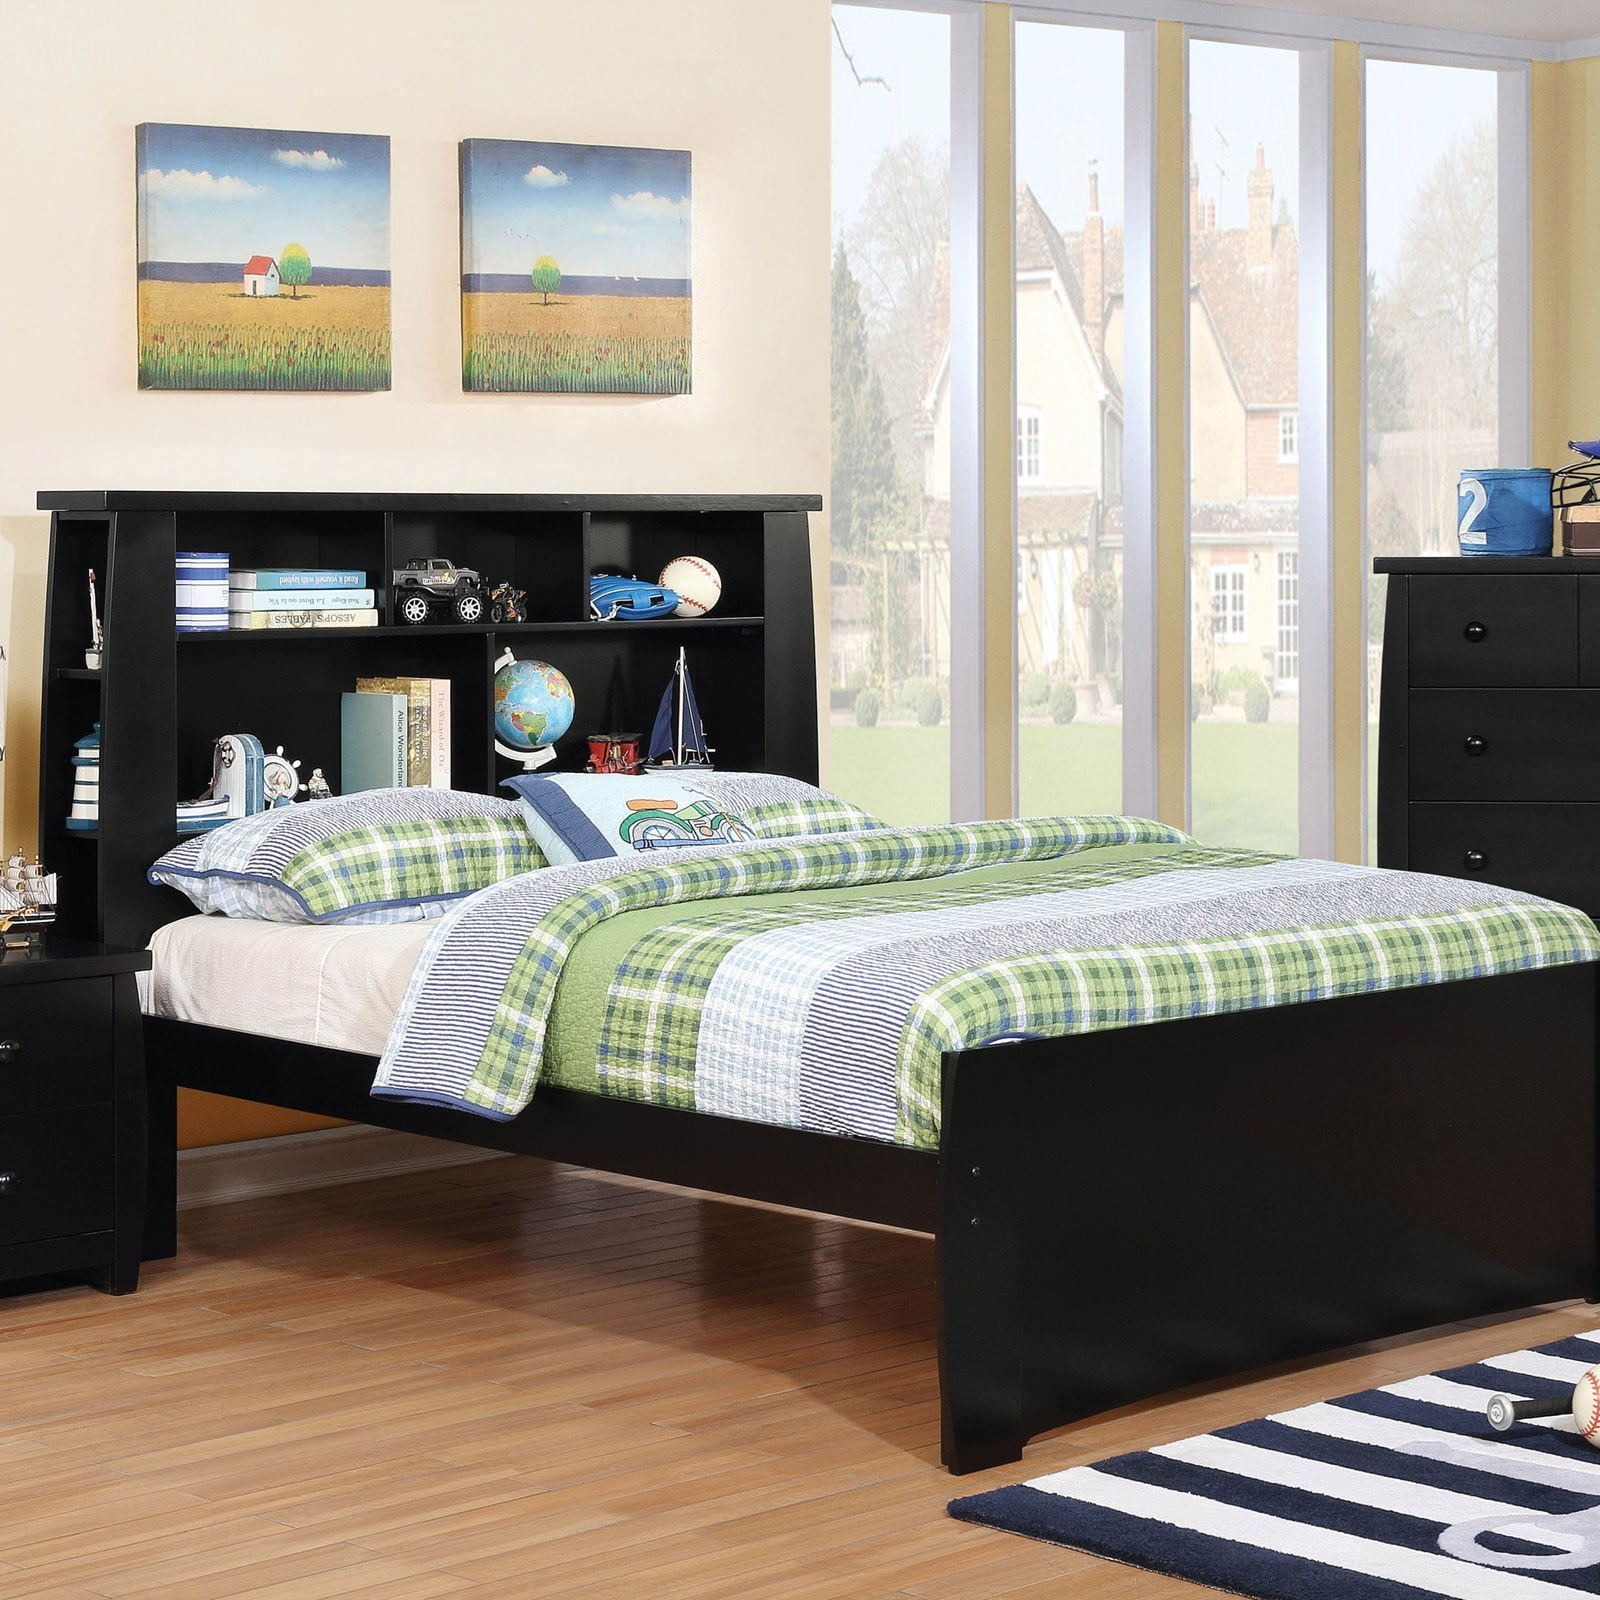 Bookcase Bed Marlee Contemporary Twin Size Bookcase Bed By Furniture Of America At Rooms For Less